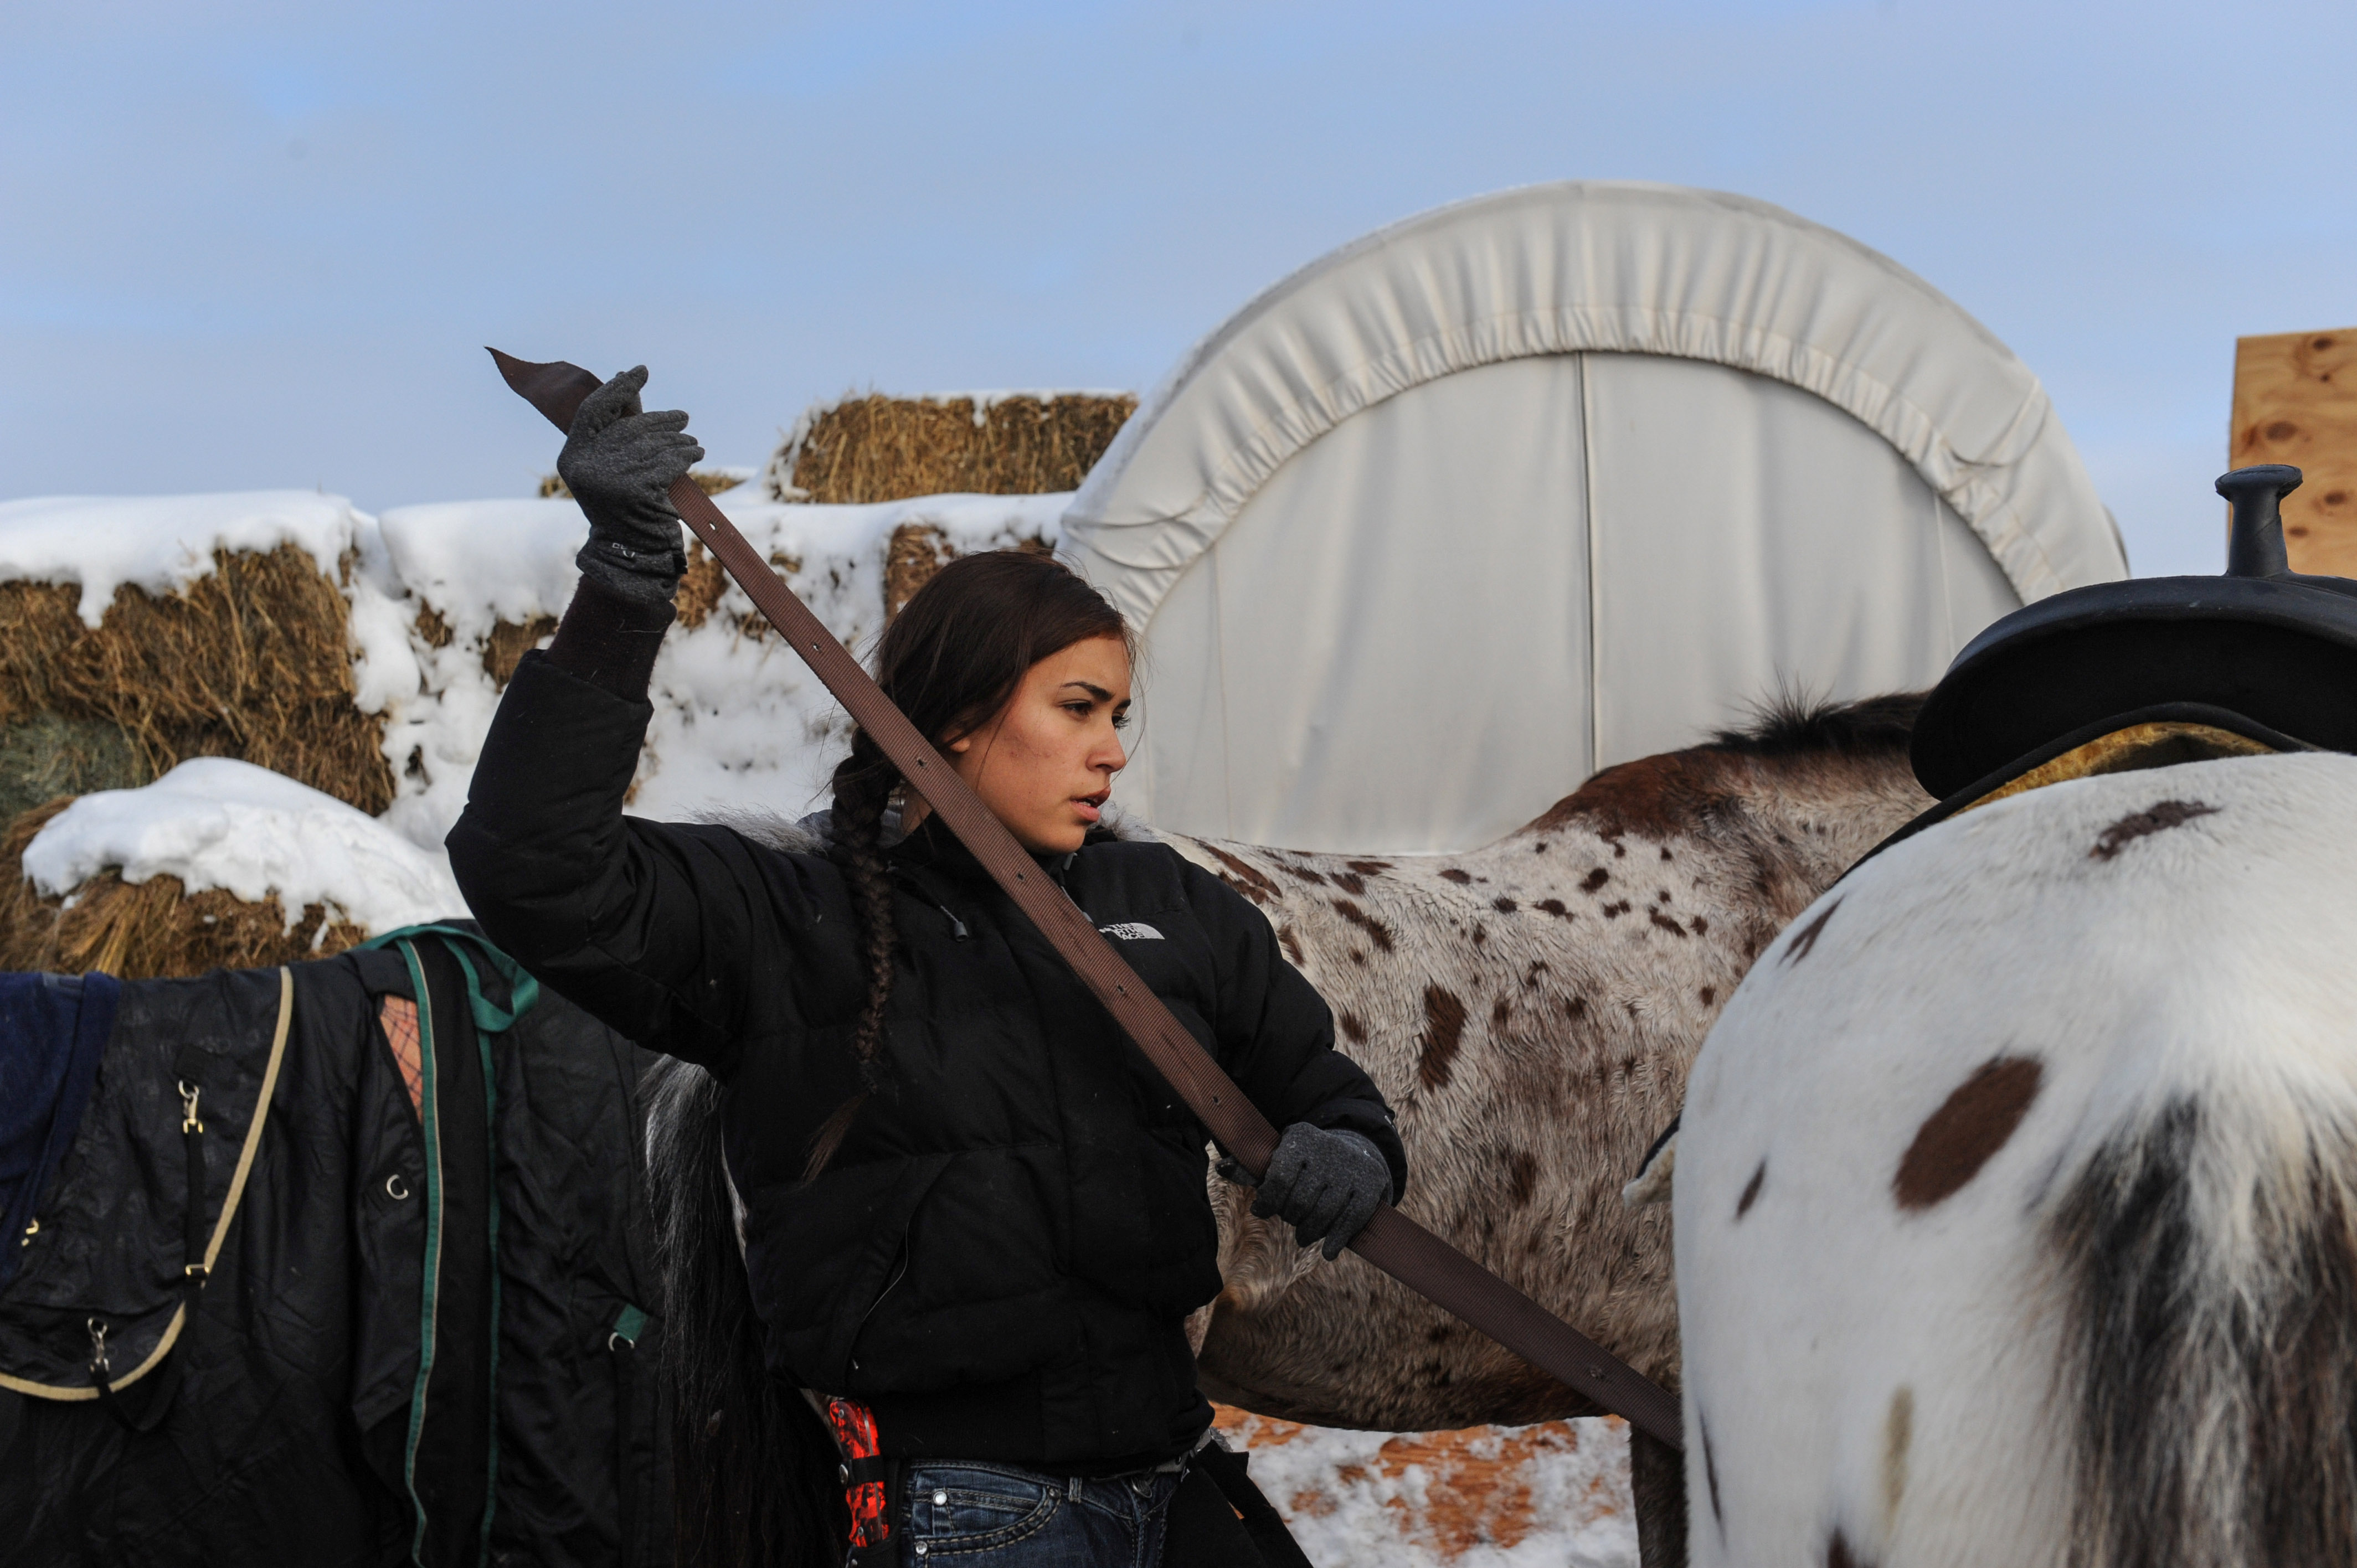 Waskoness Pitswanakwat, 16, puts a saddle on her horse in Oceti Sakowin camp during a protest against plans to pass the Dakota Access pipeline near the Standing Rock Indian Reservation, near Cannon Ball, North Dakota, U.S. December 2, 2016. REUTERS/Stephanie Keith - RTSUF9W